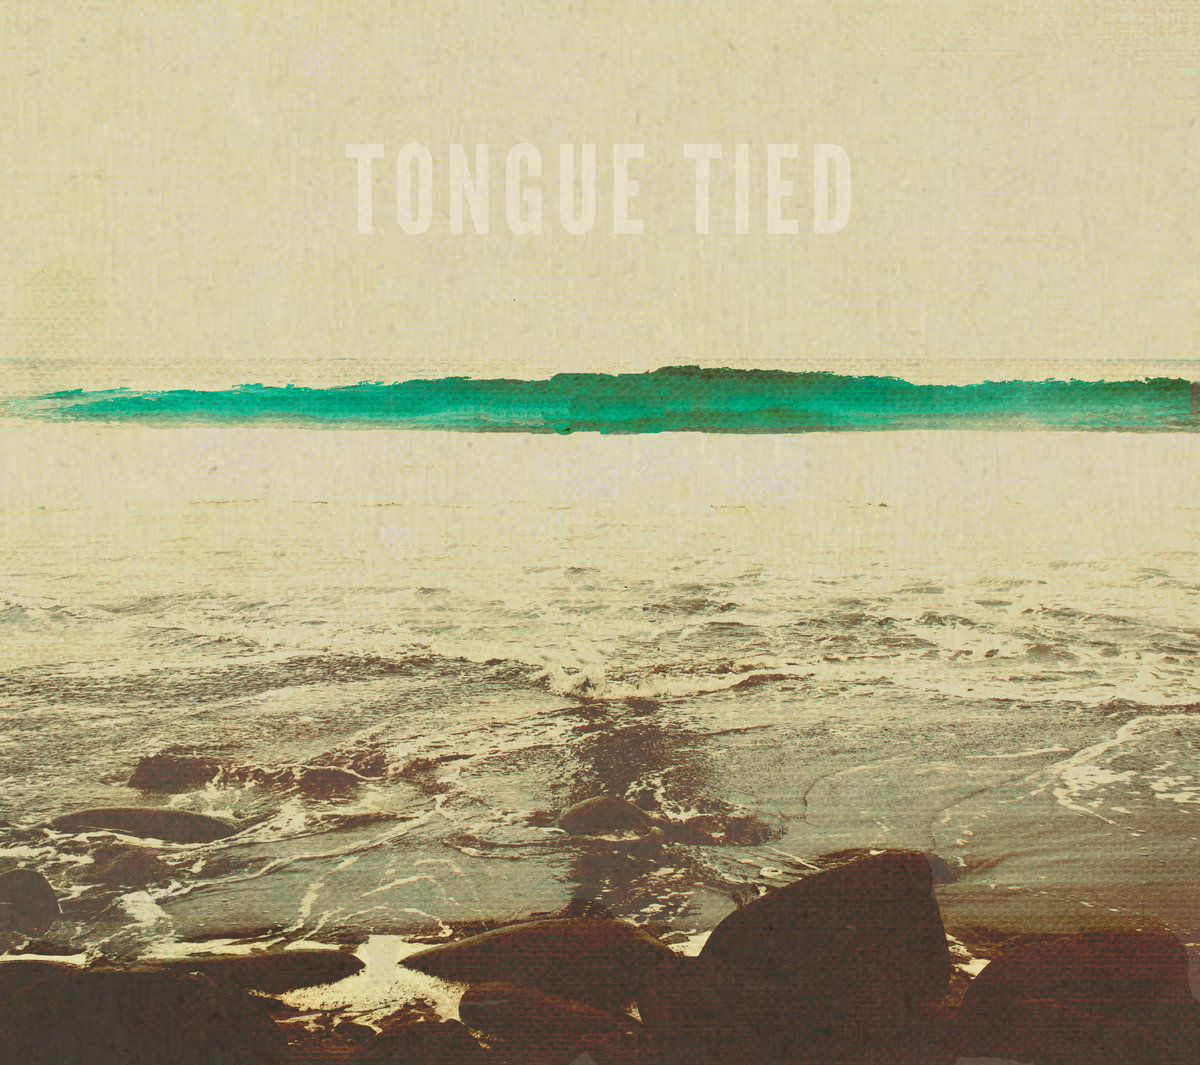 Jonathan Jones - Tongue Tied